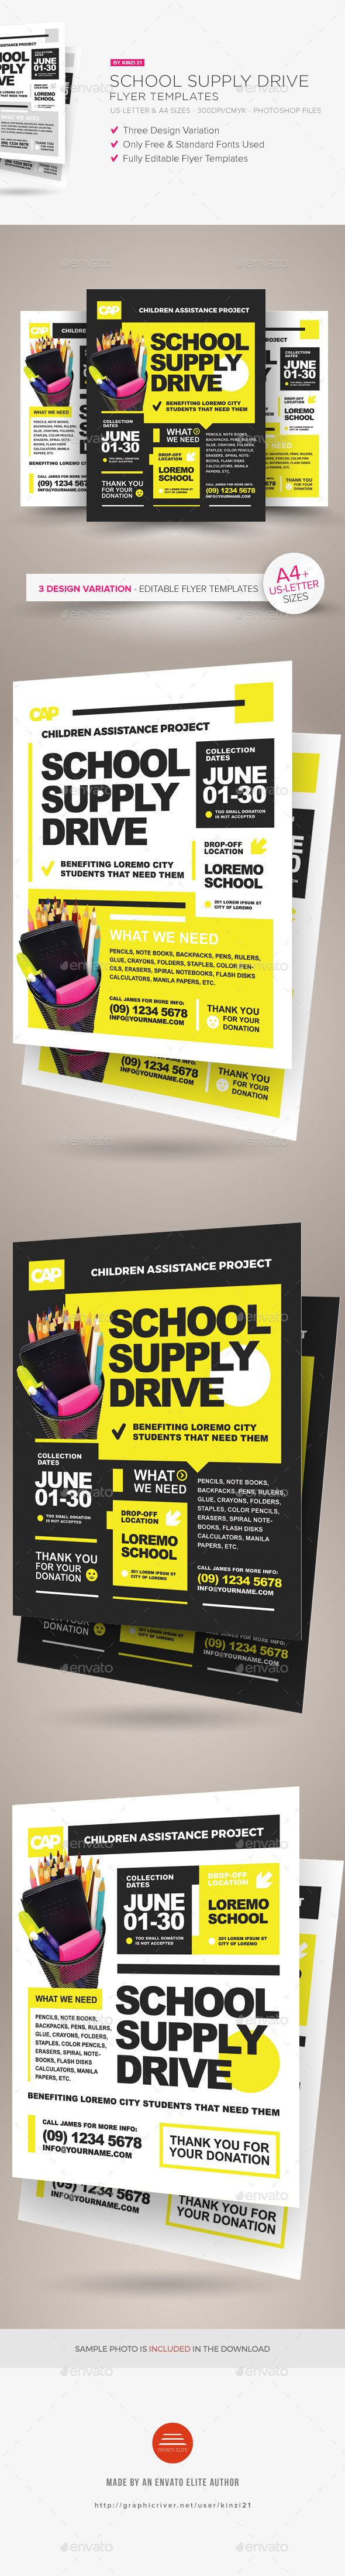 School Supply Drive Flyer Templates — Photoshop PSD #a4 #children • Download ➝ https://graphicriver.net/item/school-supply-drive-flyer-templates/19066088?ref=pxcr